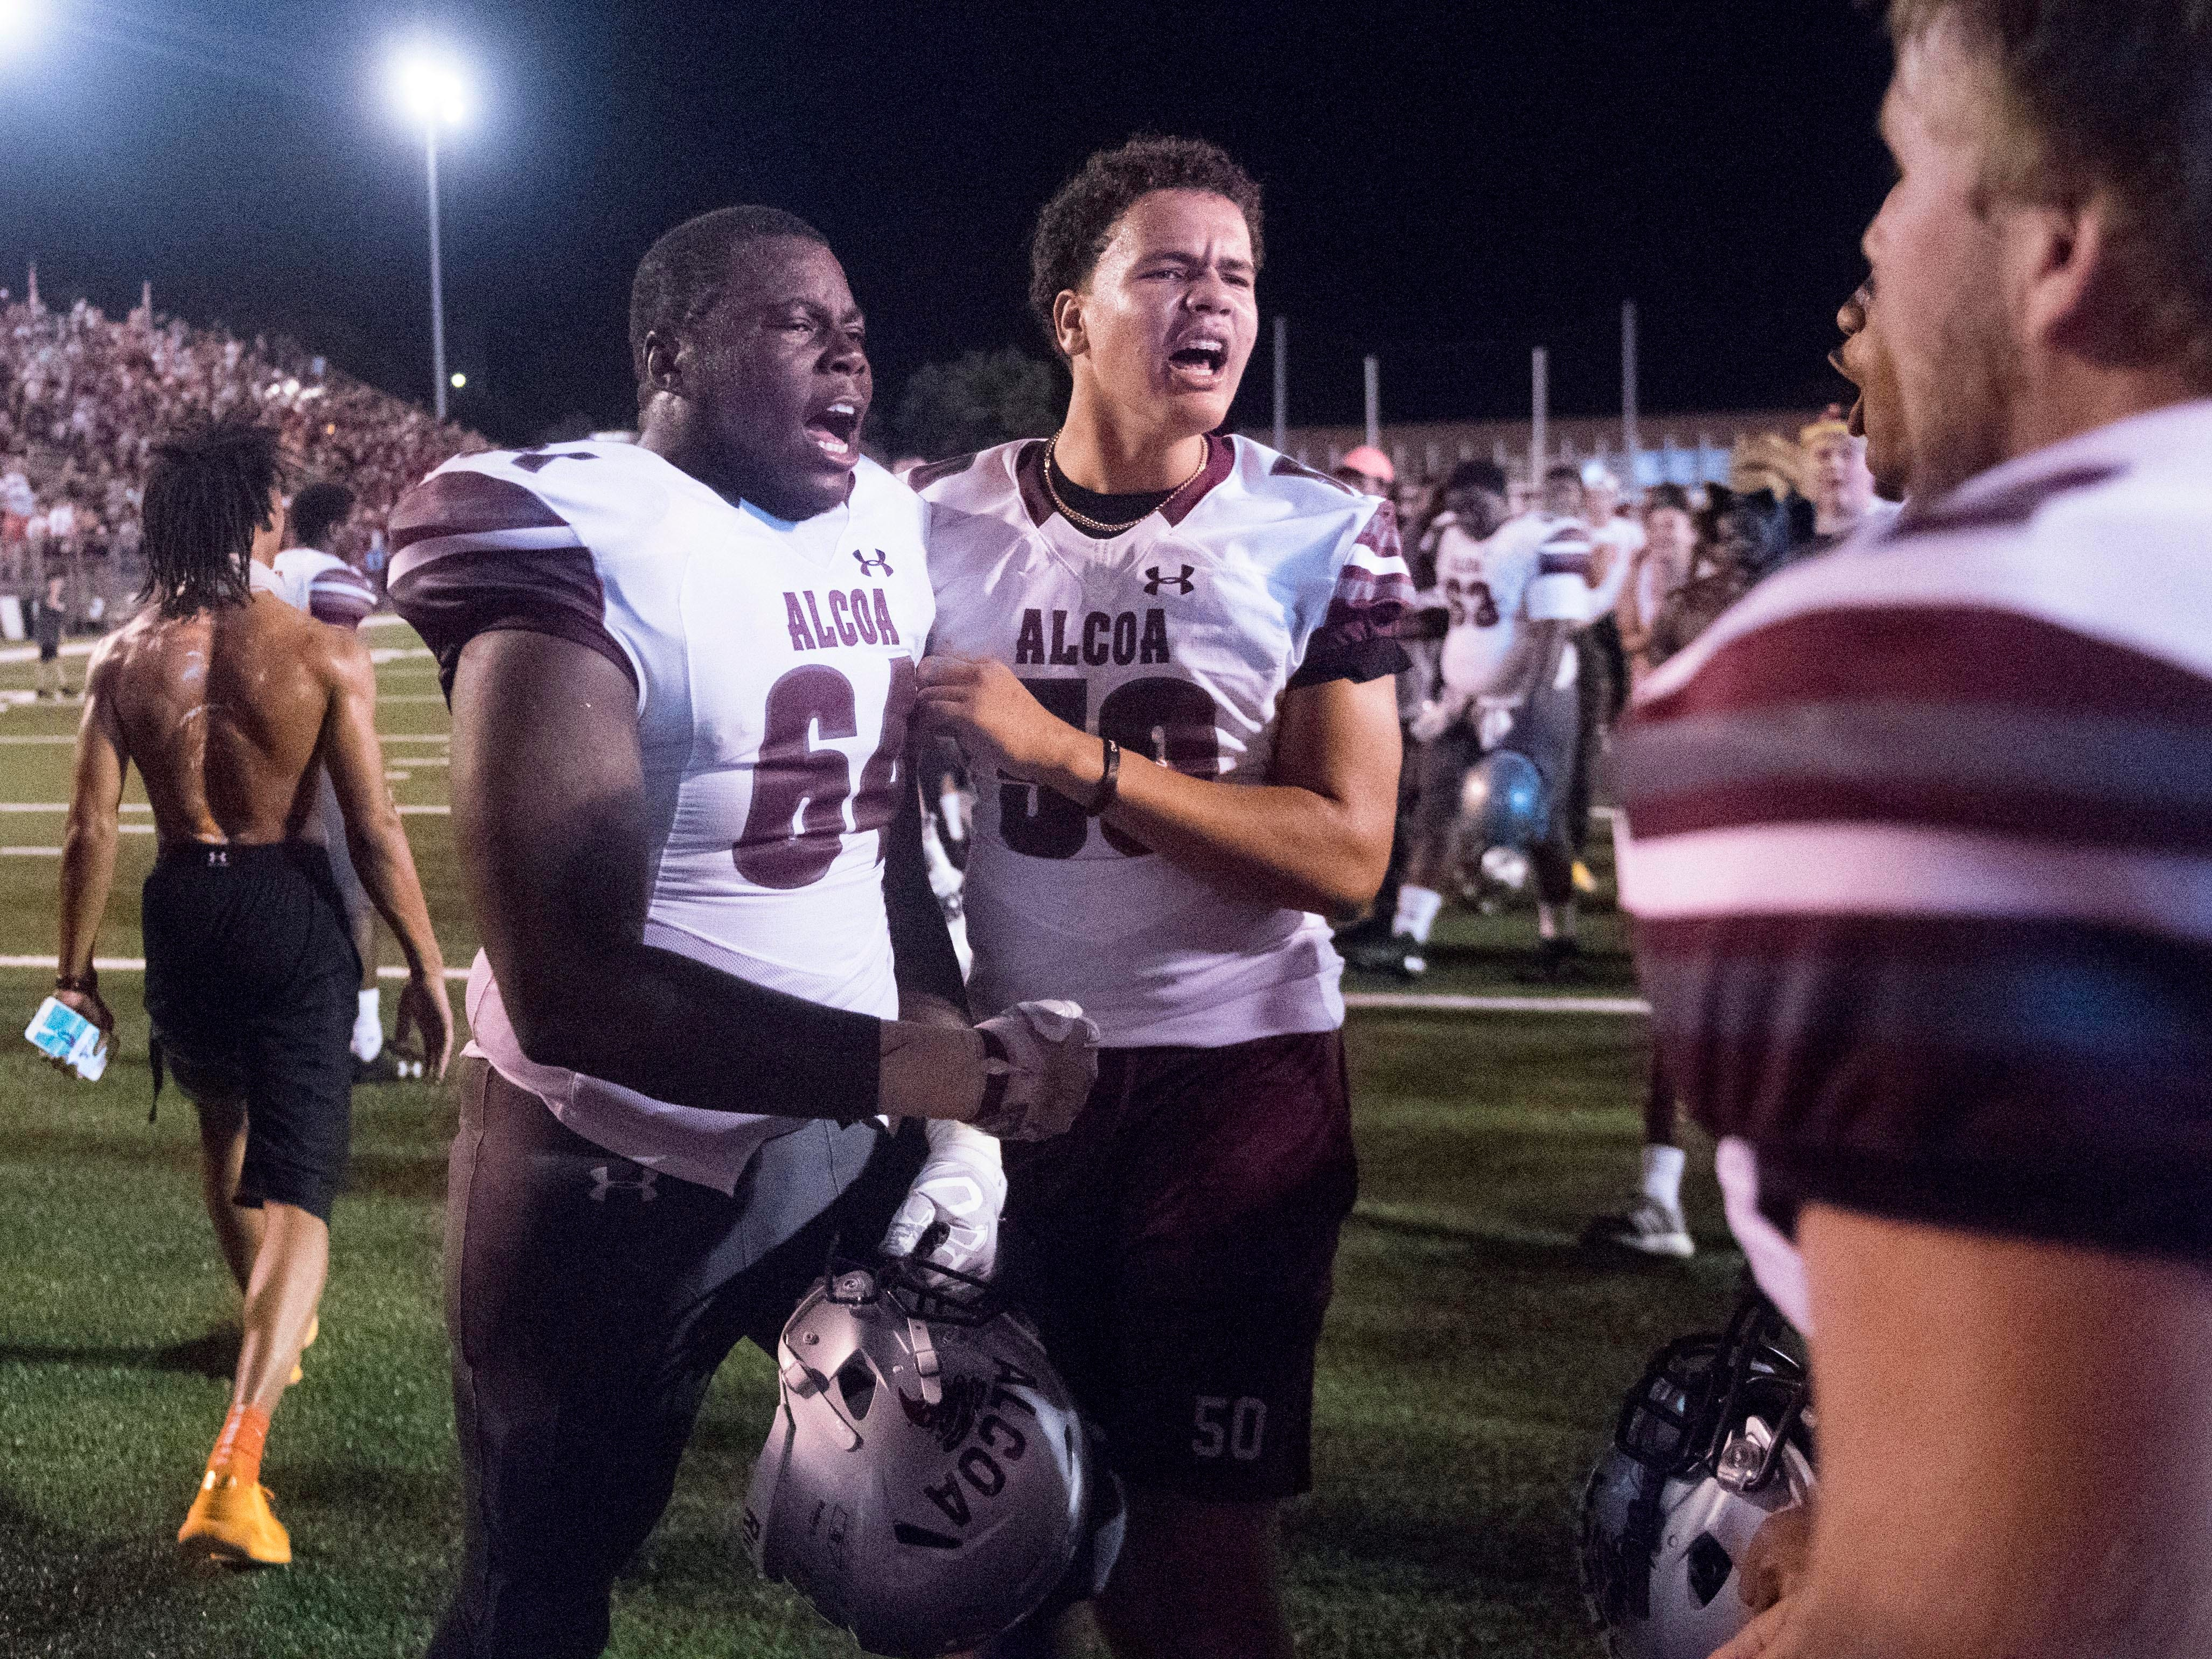 Alcoa players Malik Hall (64) and Daunte Asbury (50) celebrate after their victory over Maryville on Friday, September 7, 2018.